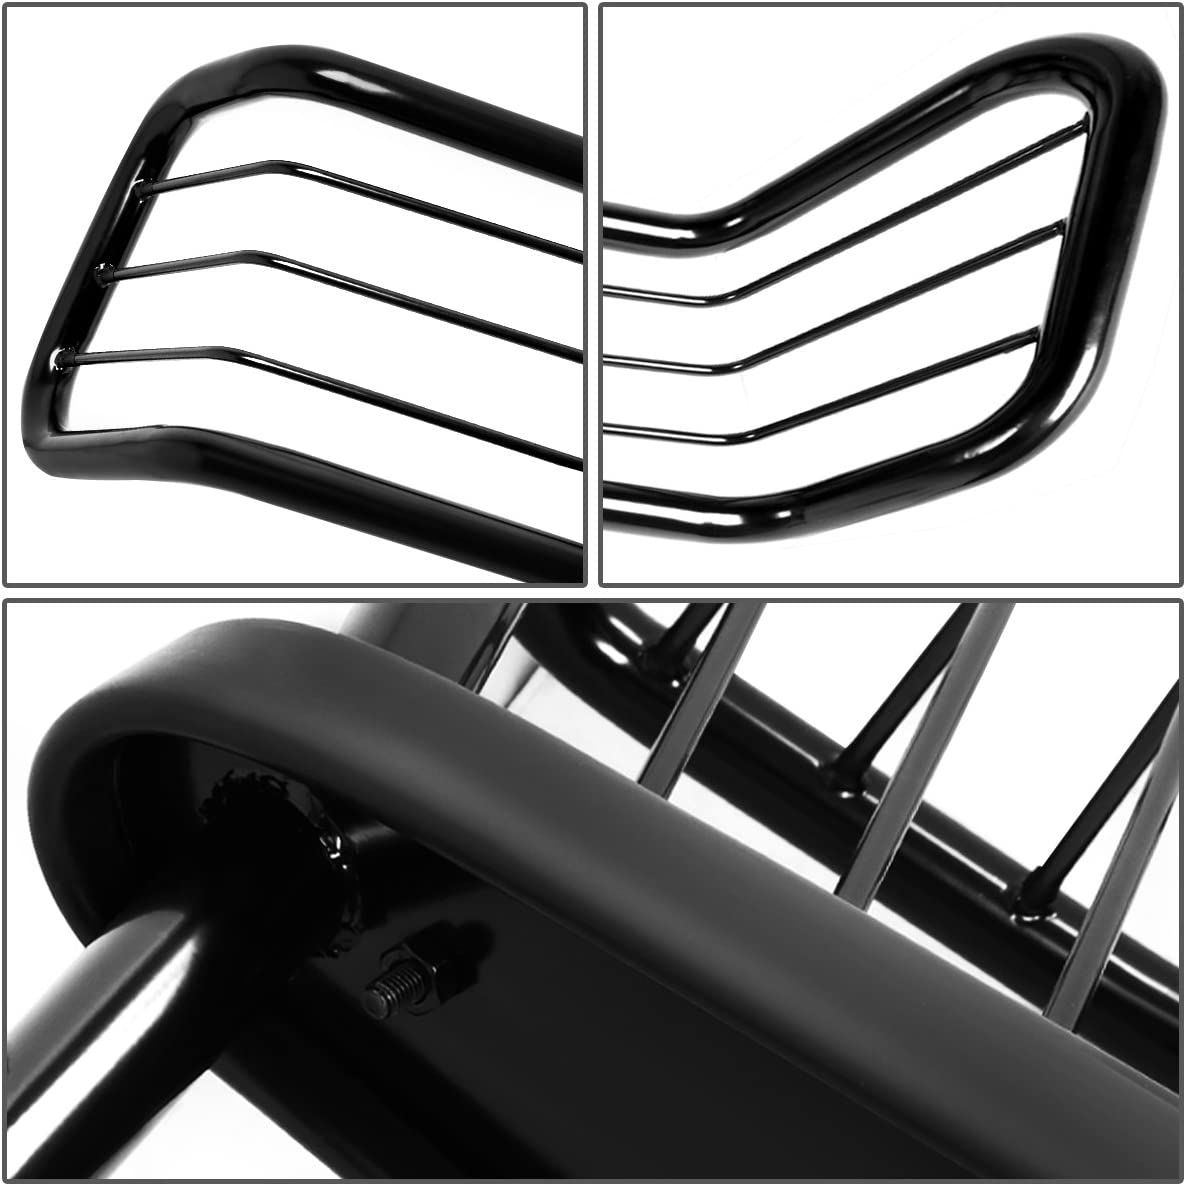 DNA MOTORING Silver GRILL-G-053-SS Front Bumper Brush Grille Guard